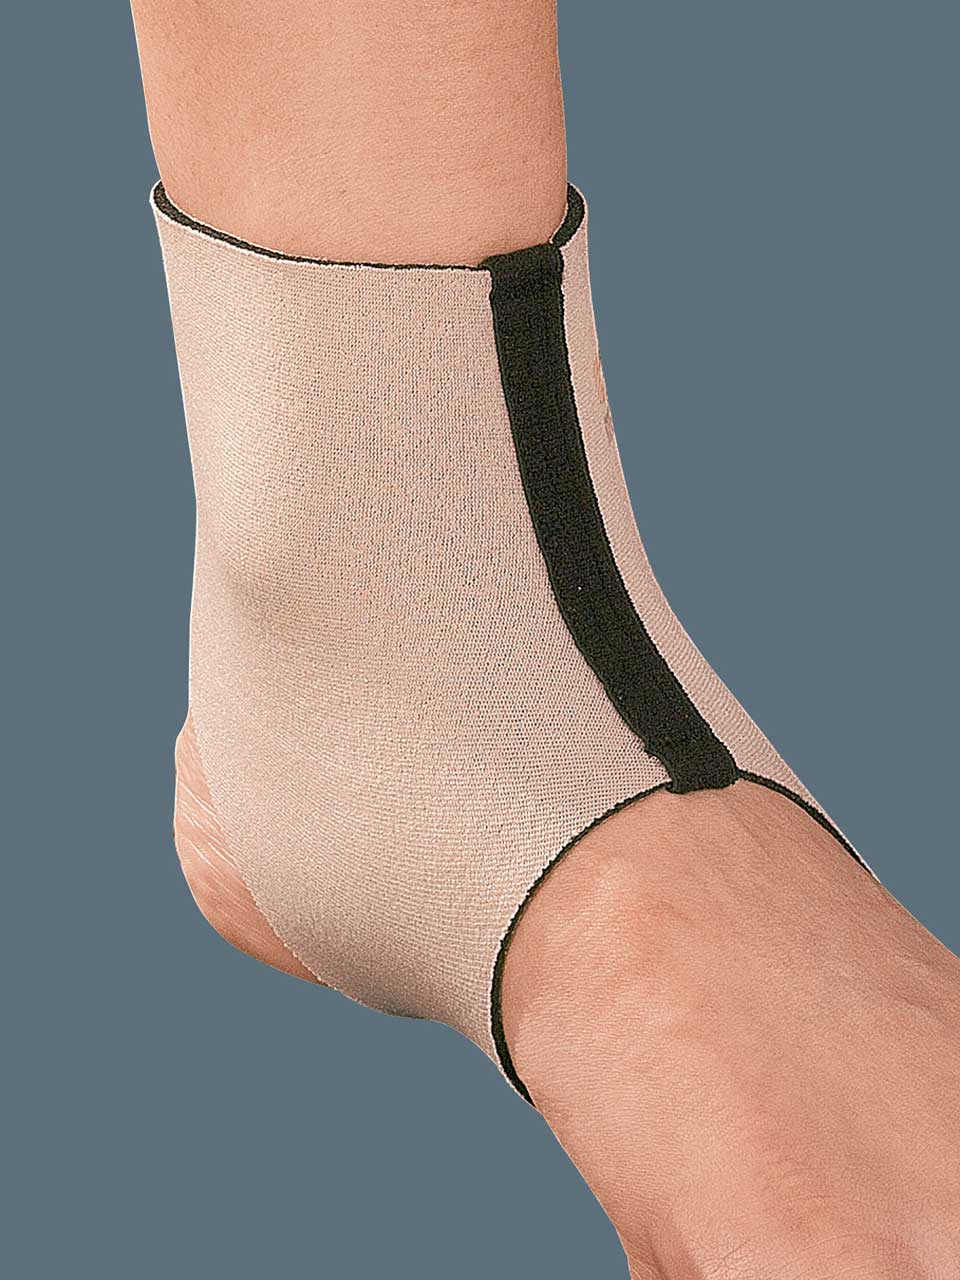 OBJECT - Ankle support